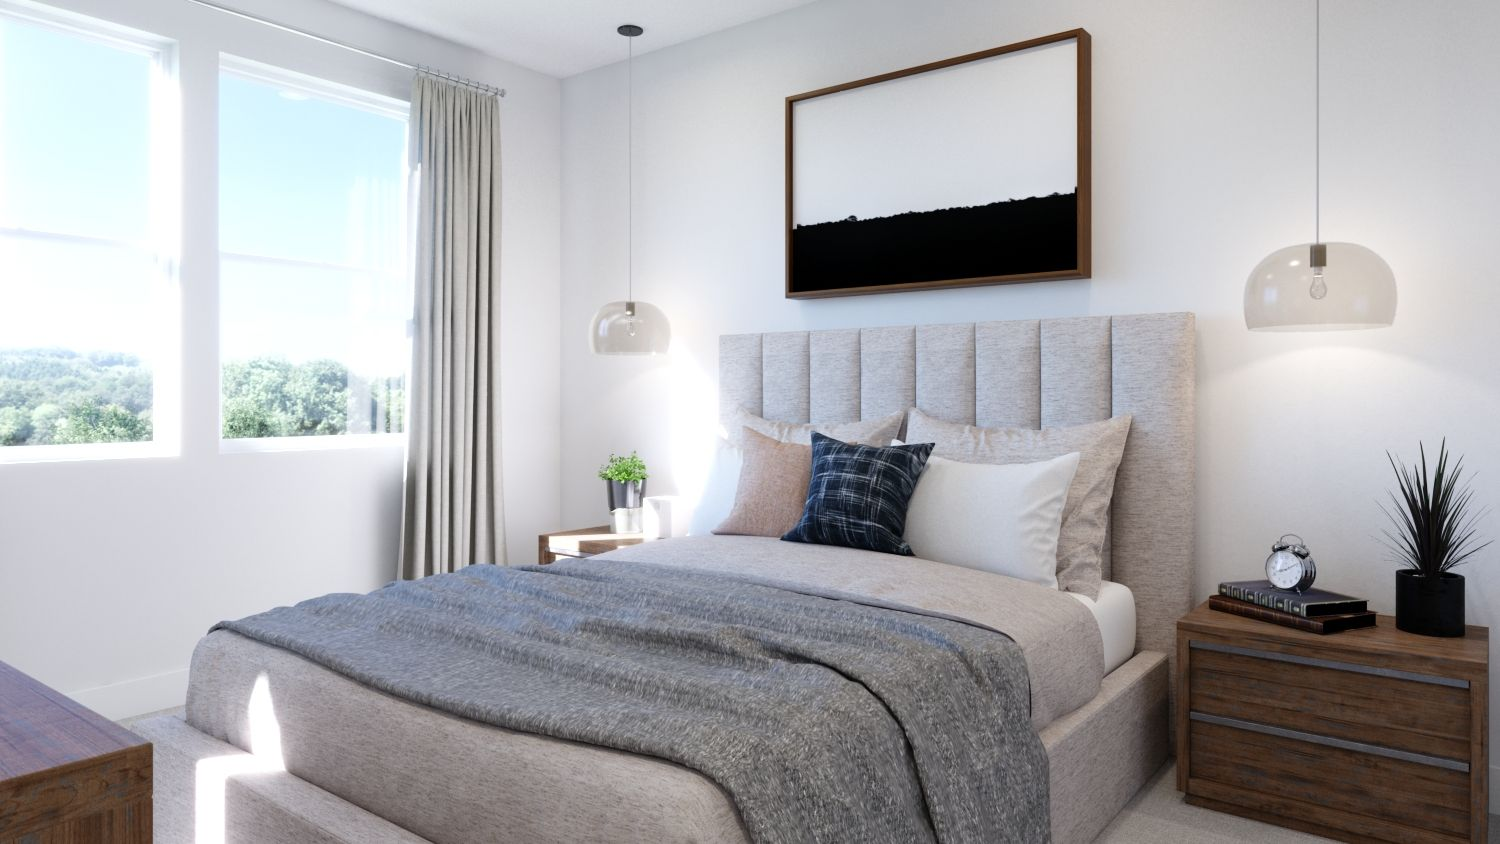 Bedroom featured in the Plan 1 By Melia in Orange County, CA